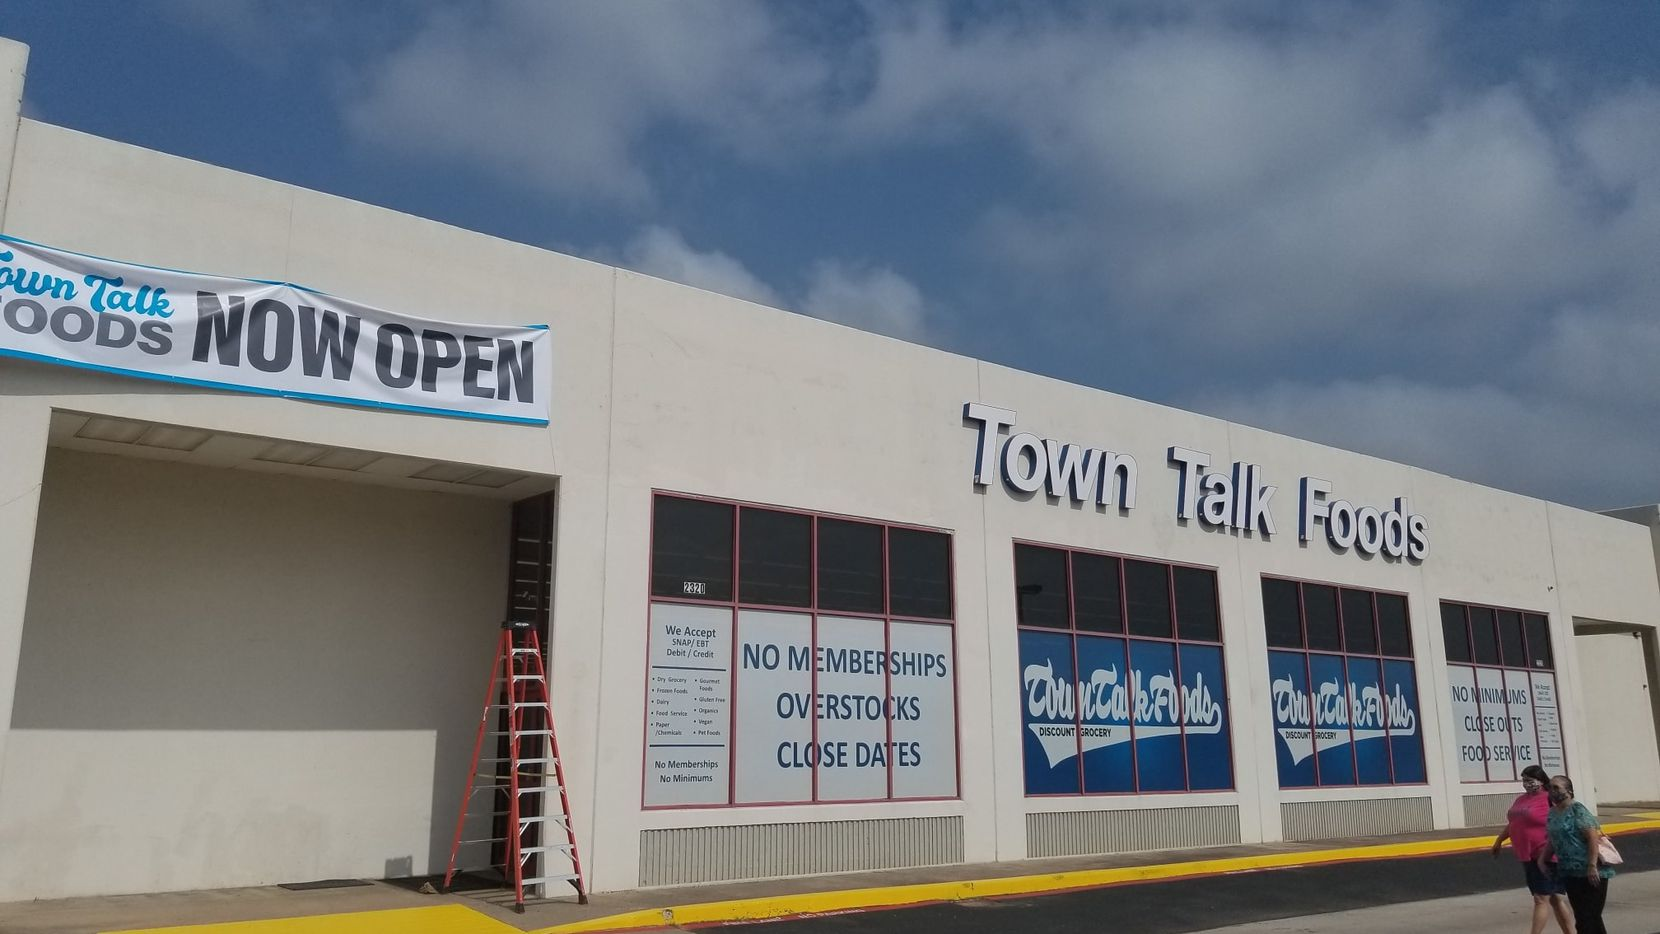 Town Talk Foods-Arlington welcomes shoppers on July 2 in Arlington, Texas. The store opened in Arlington on June 29.